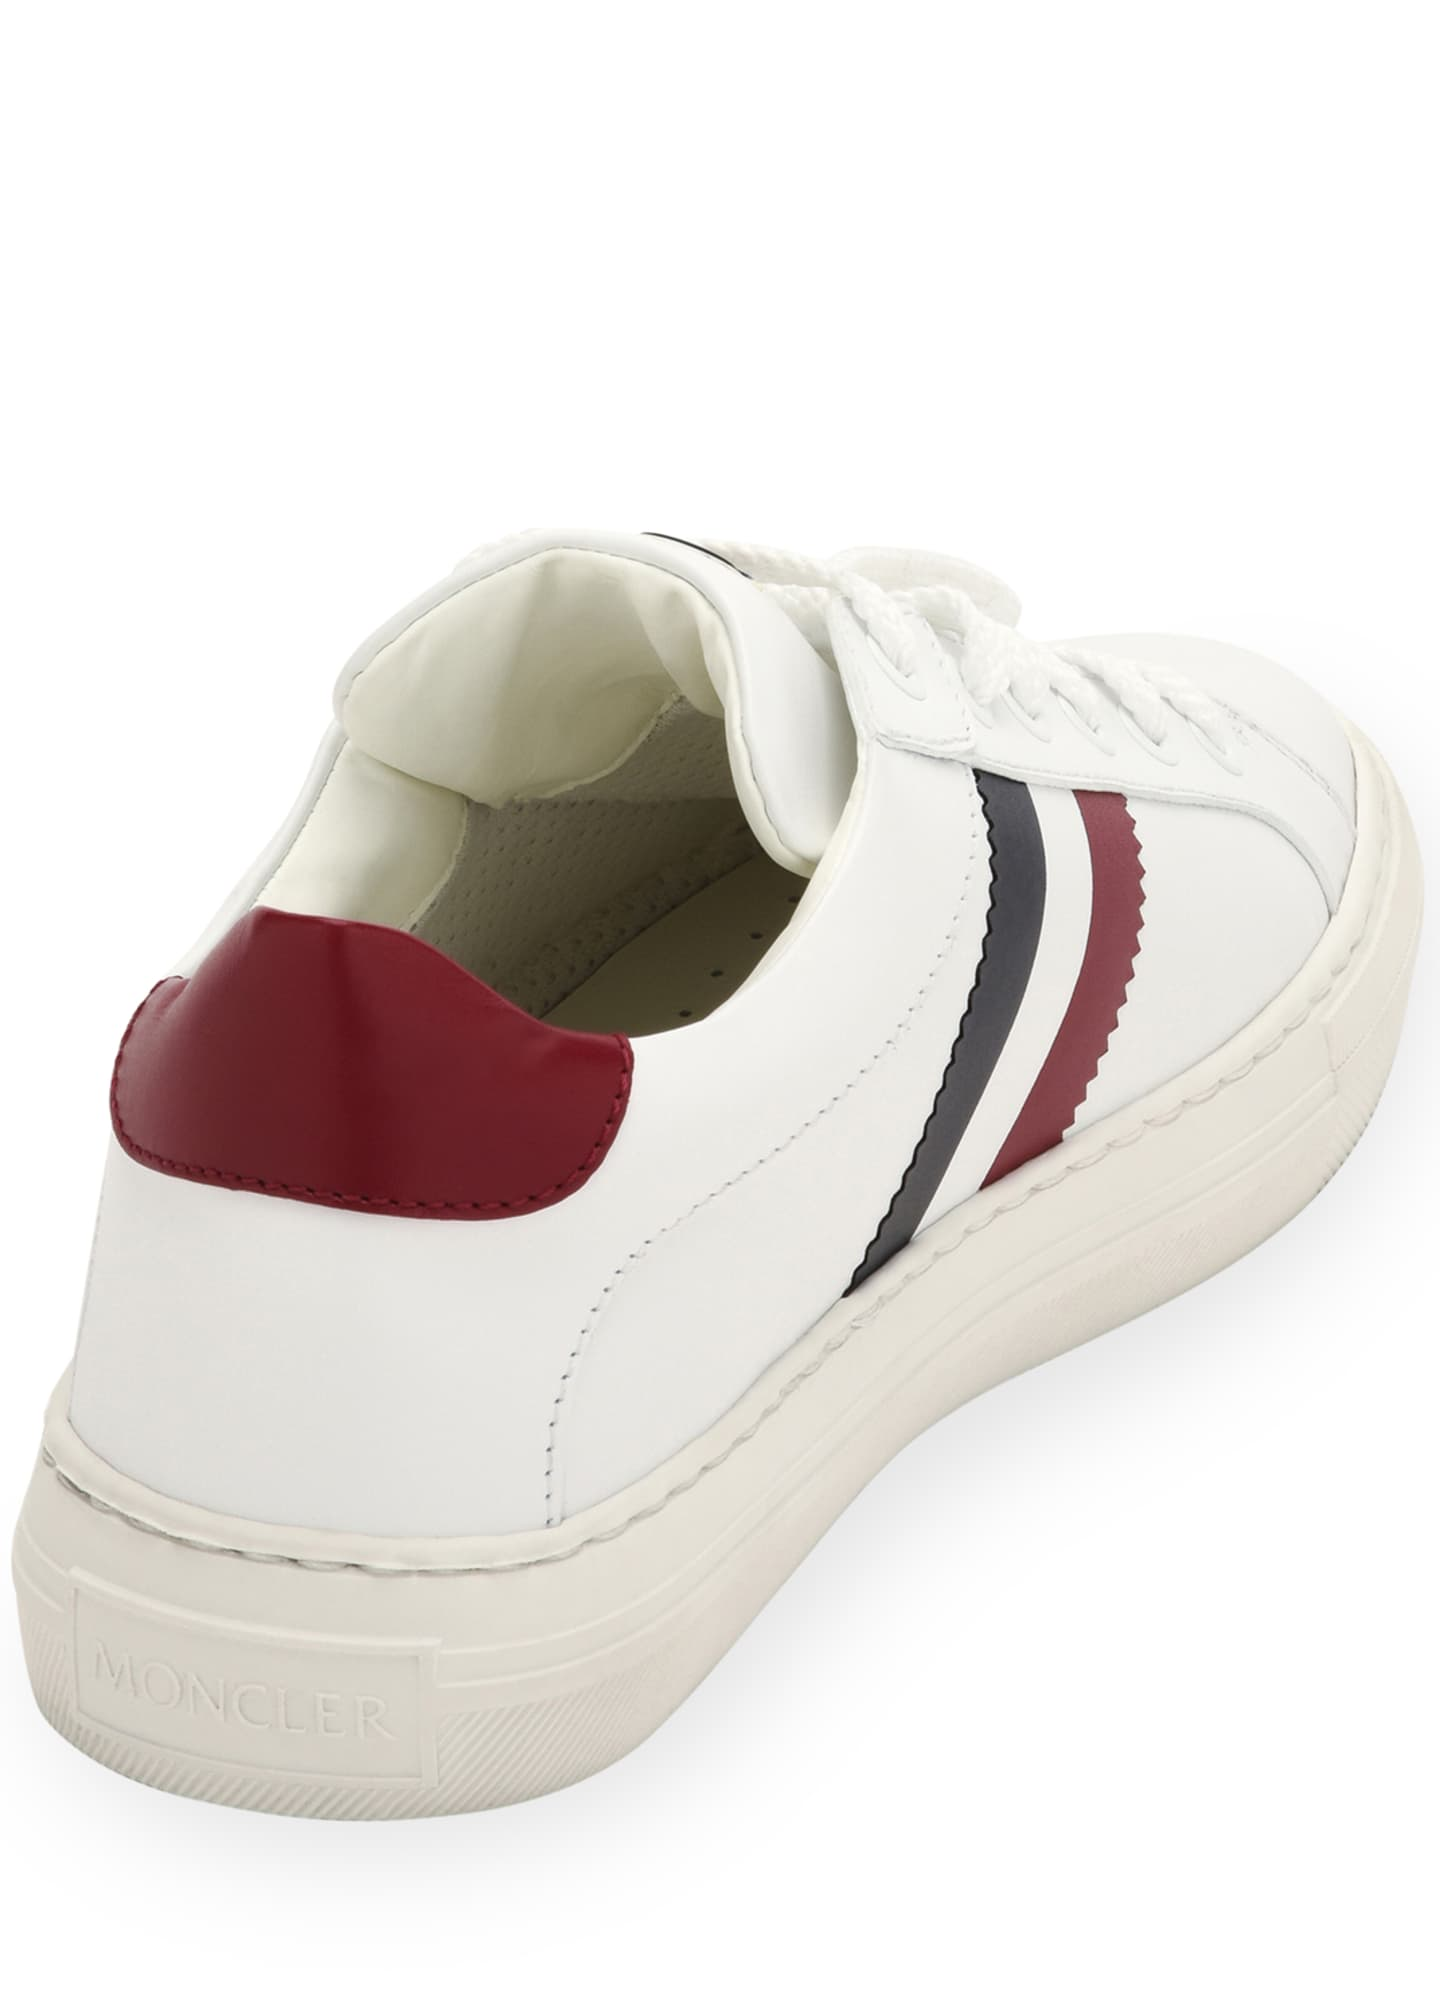 Image 3 of 3: Ariel Scarpa Leather Sneakers